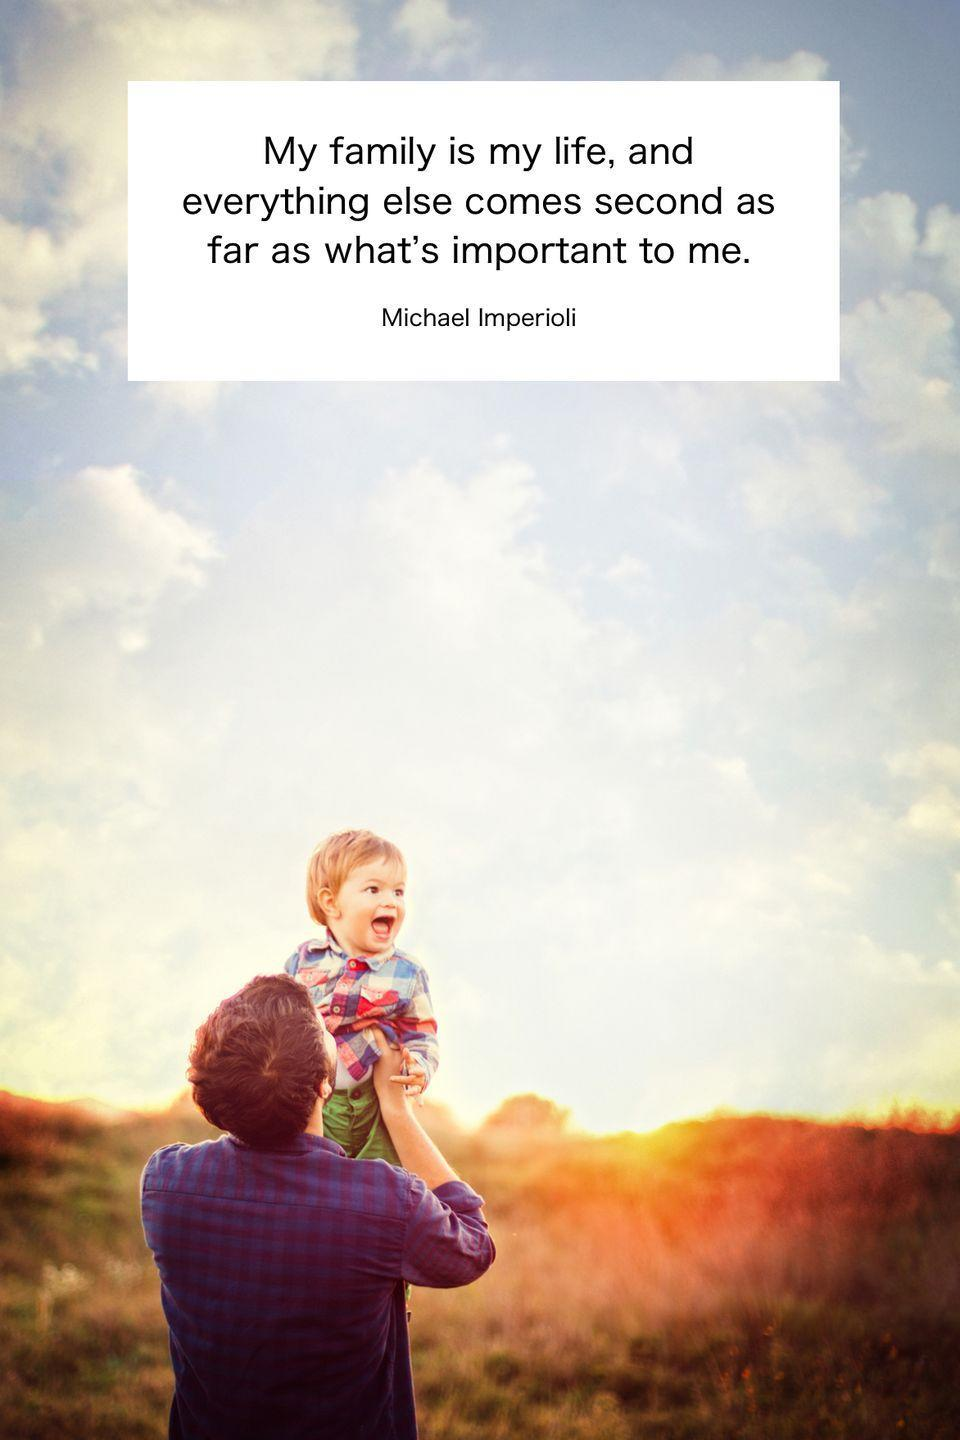 "<p>""My family is my life, and everything else comes second as far as what's important to me.""</p>"